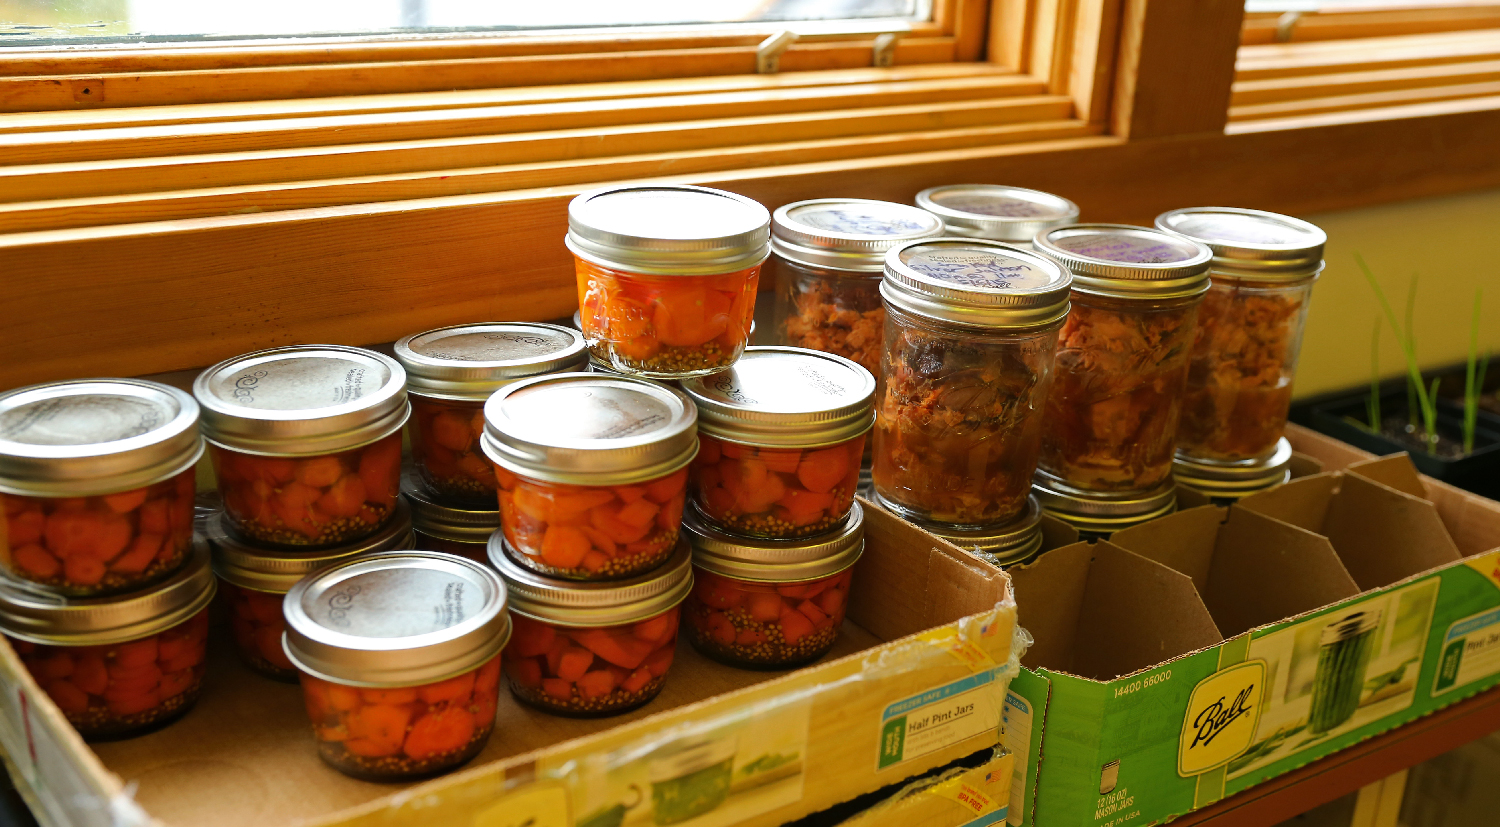 Pickled carrots and canned smoked salmon put up by the students. This bounty will be enjoyed by the students and guests at special school events.